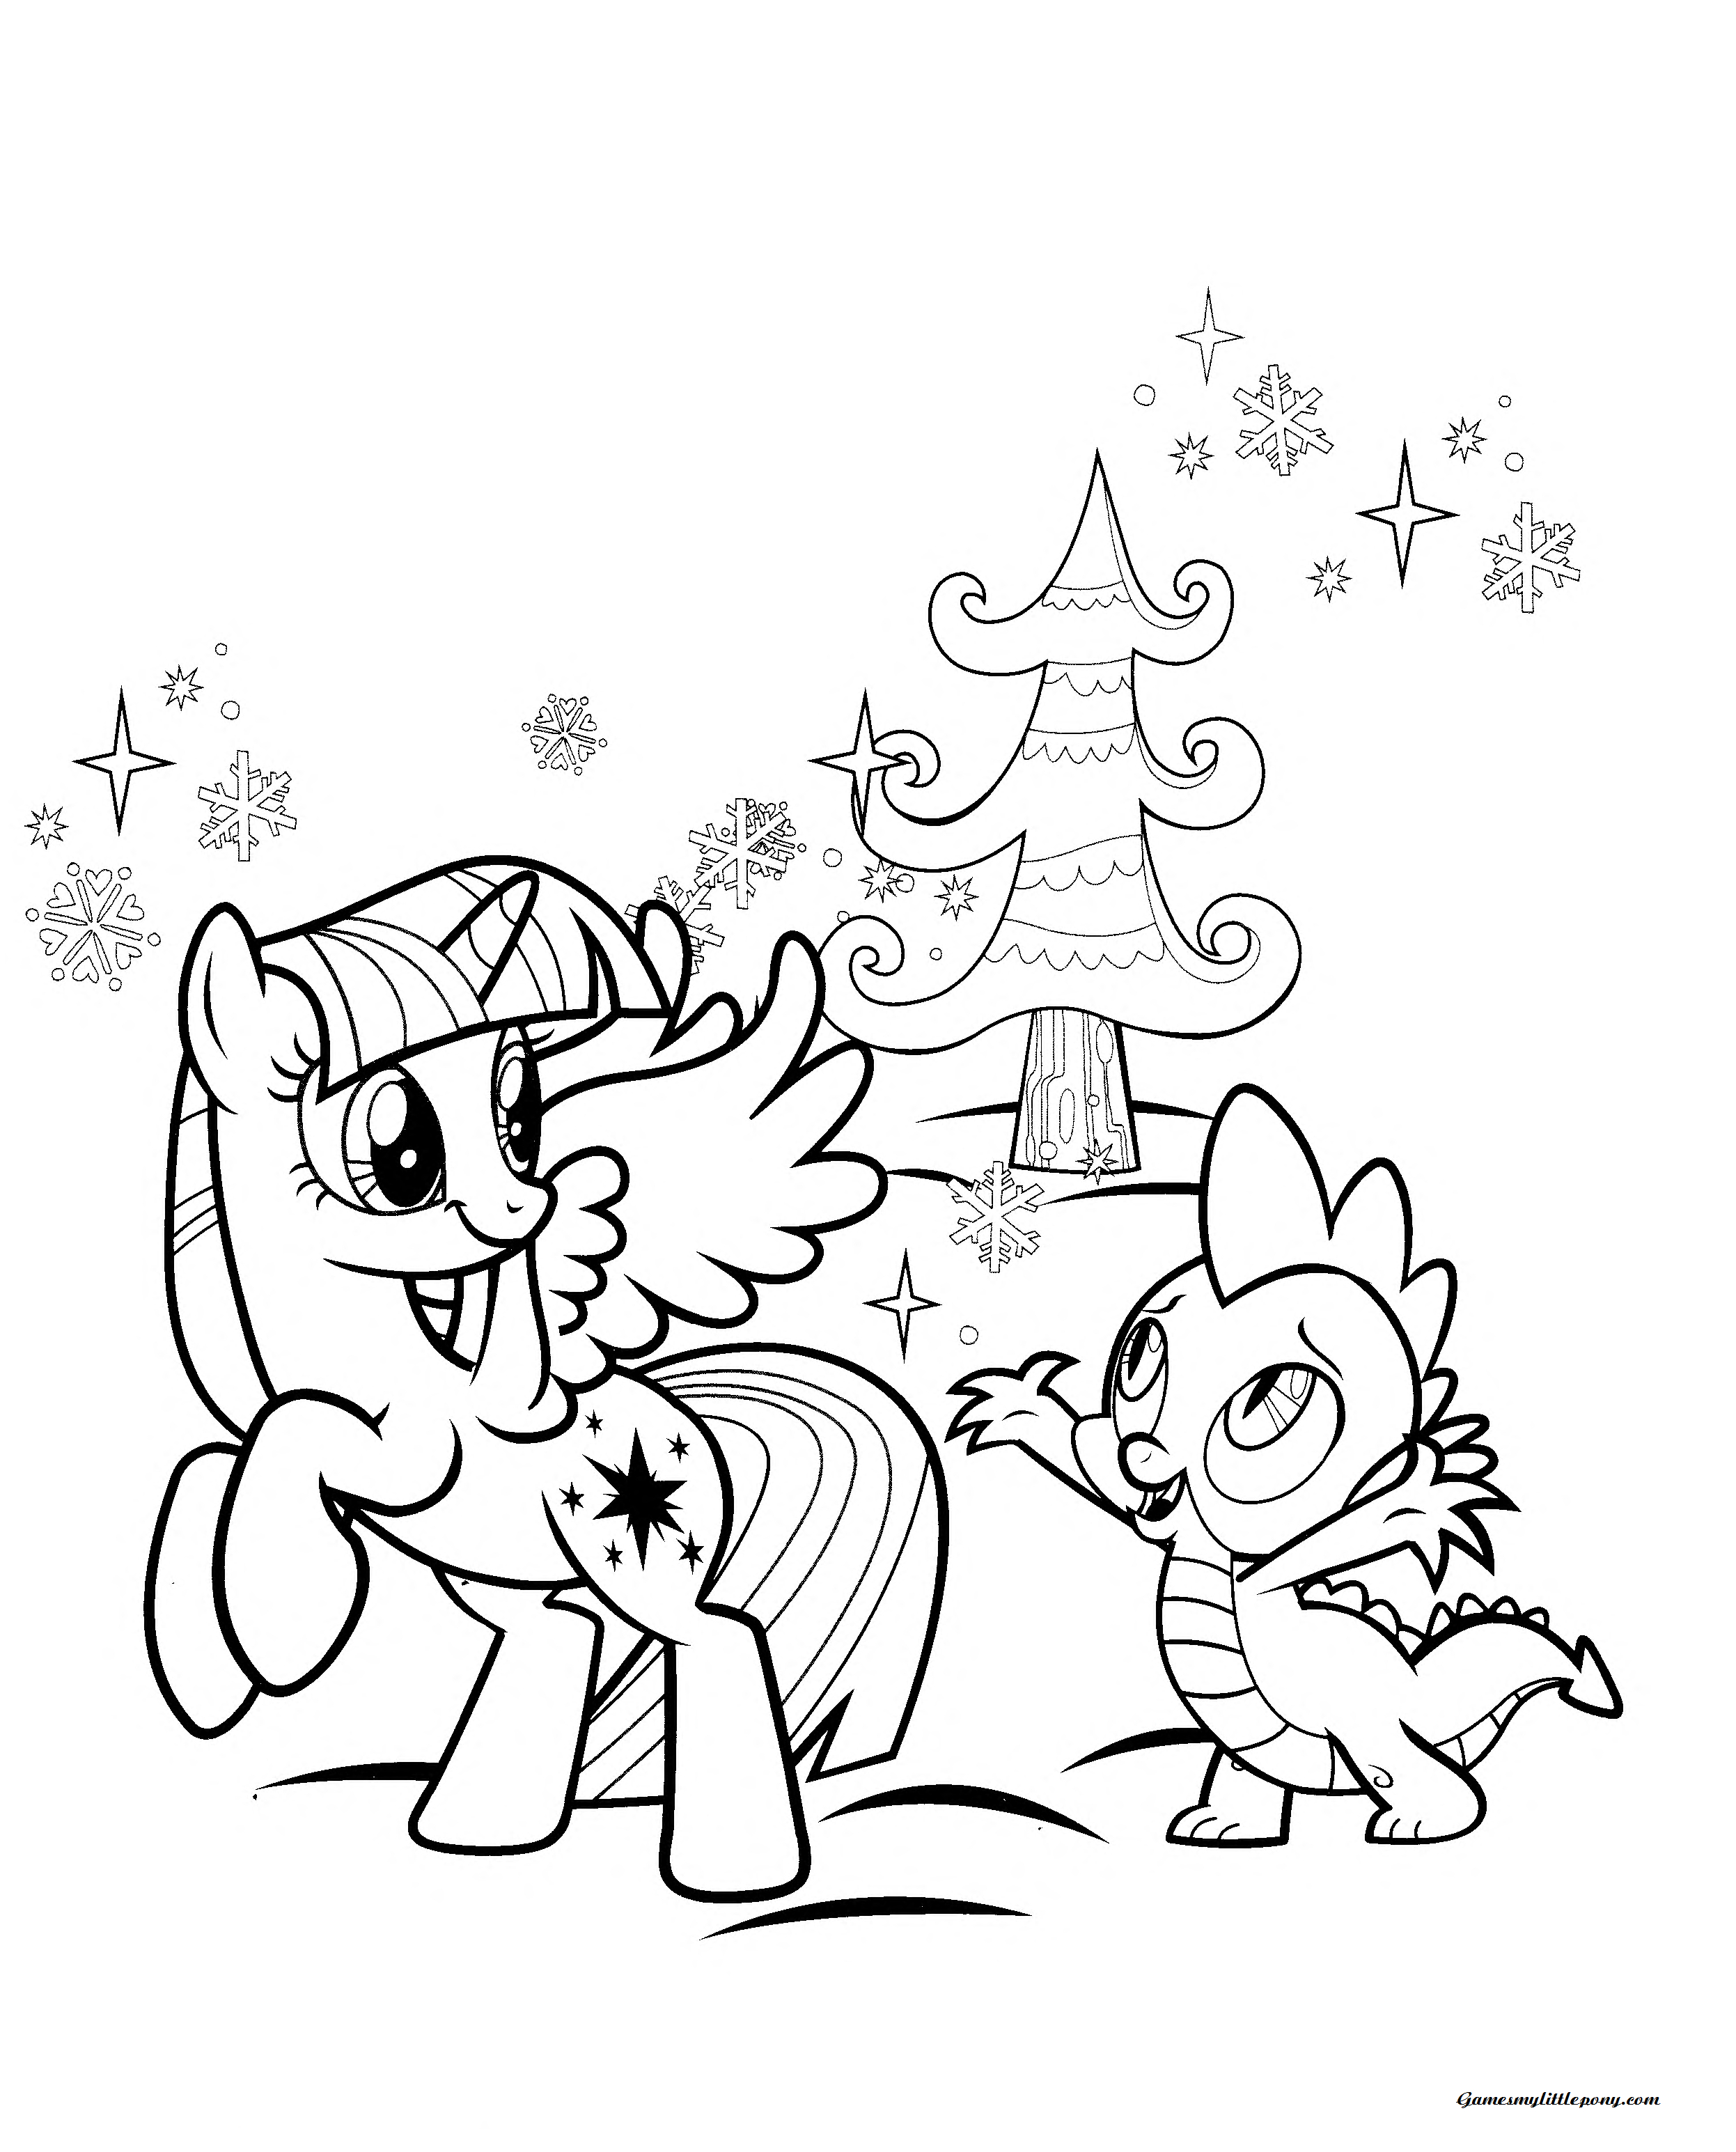 Spike and Applejack Joke